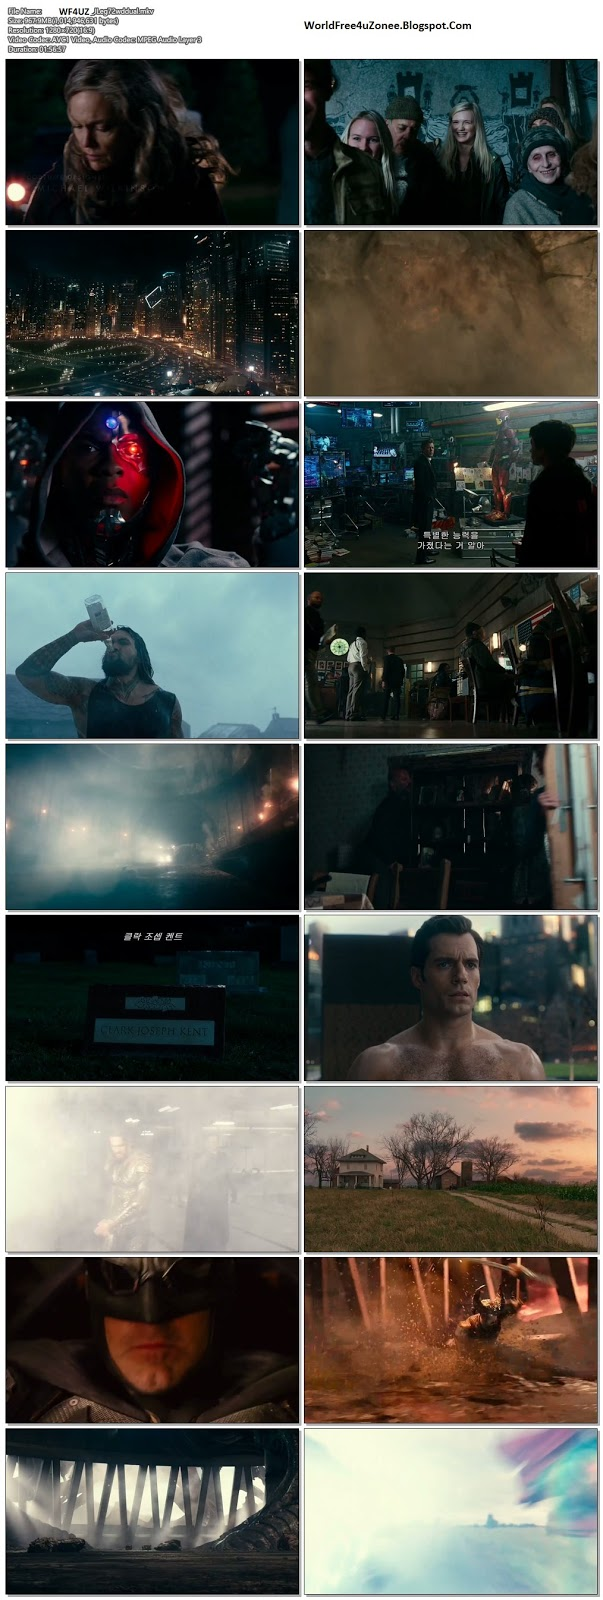 Justice League (2017) Dual Audio HC HDRip 720p 900MB Full Movie Free Download And Watch Online Latest Hollywood Dual Audio Hindi Dubbed Movies 2017 Free At WorldFree4uZonee.Blogspot.Com